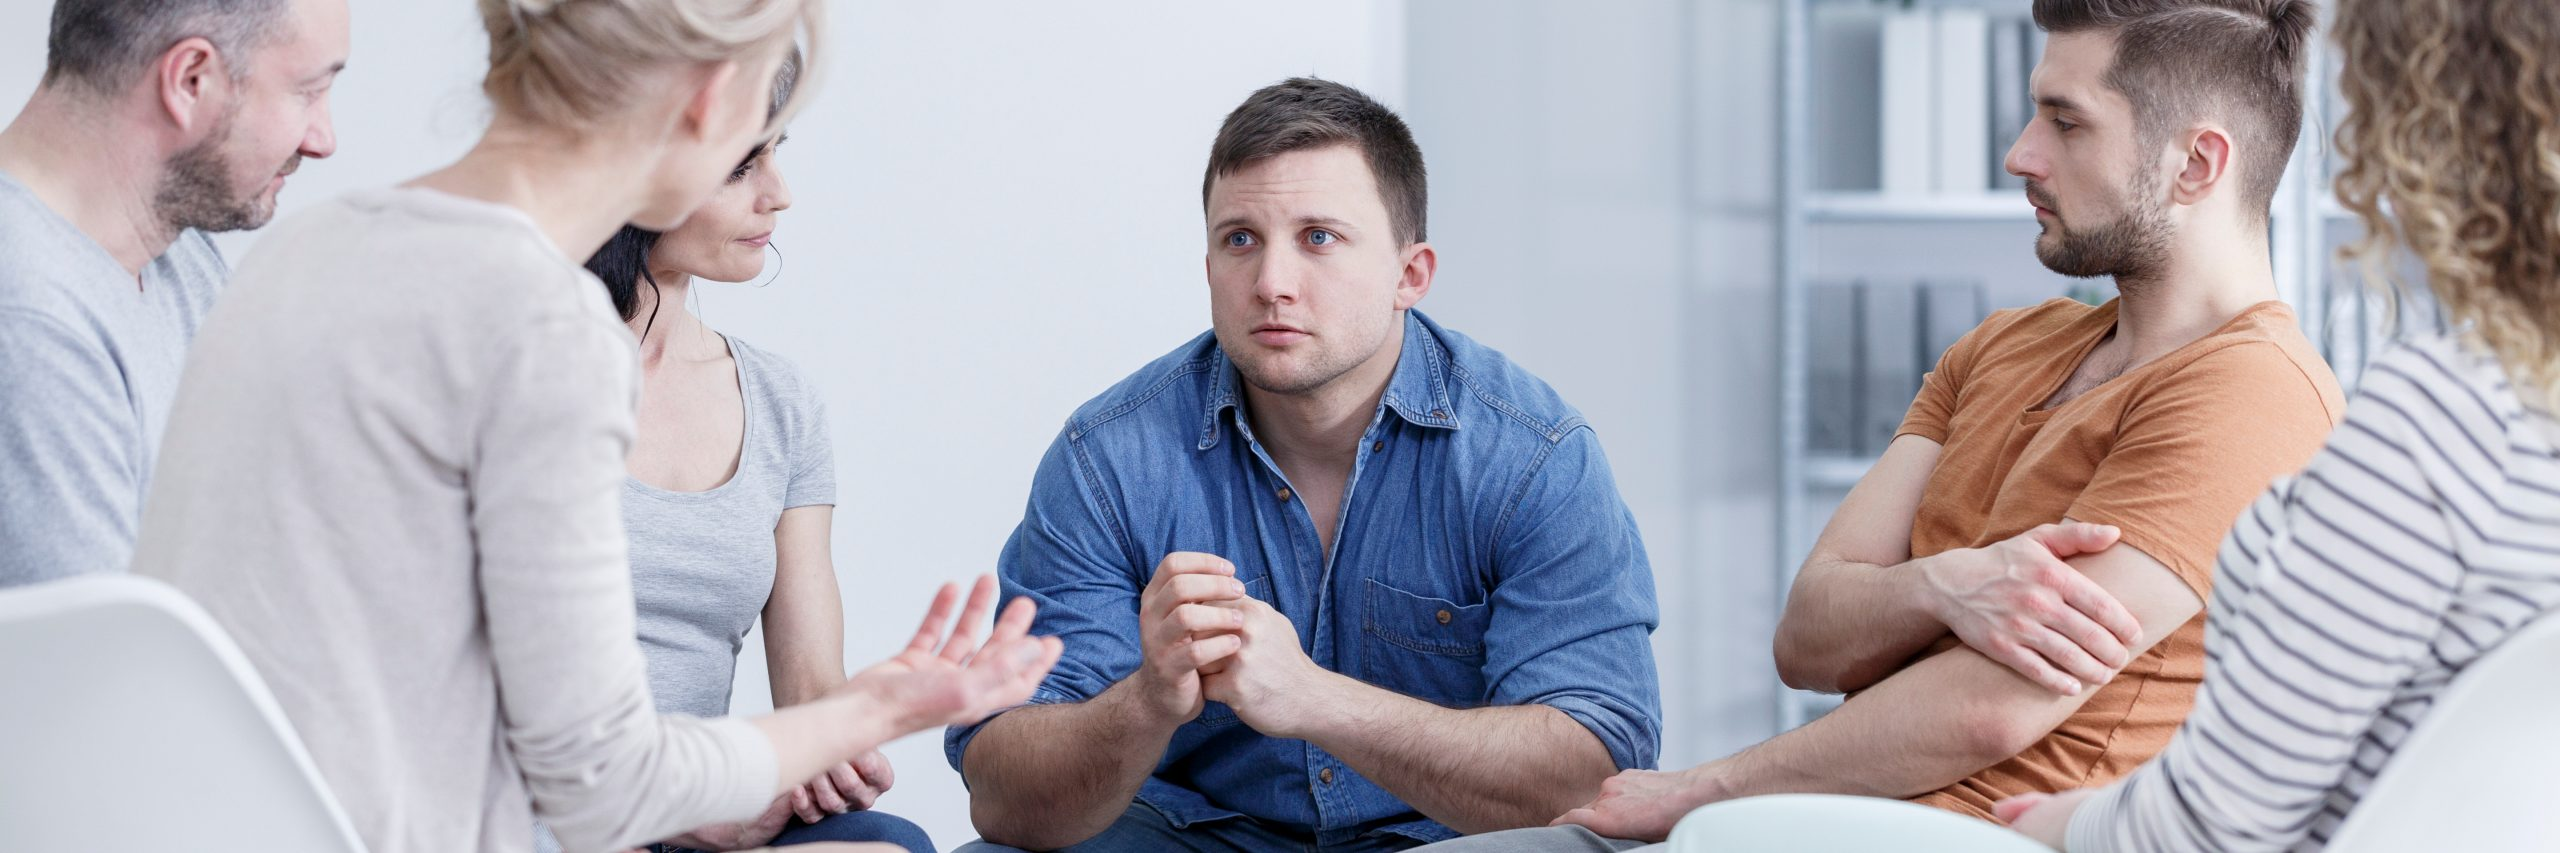 Support,Group,Helping,Worried,Man,With,Overweight,During,Psychotherapy